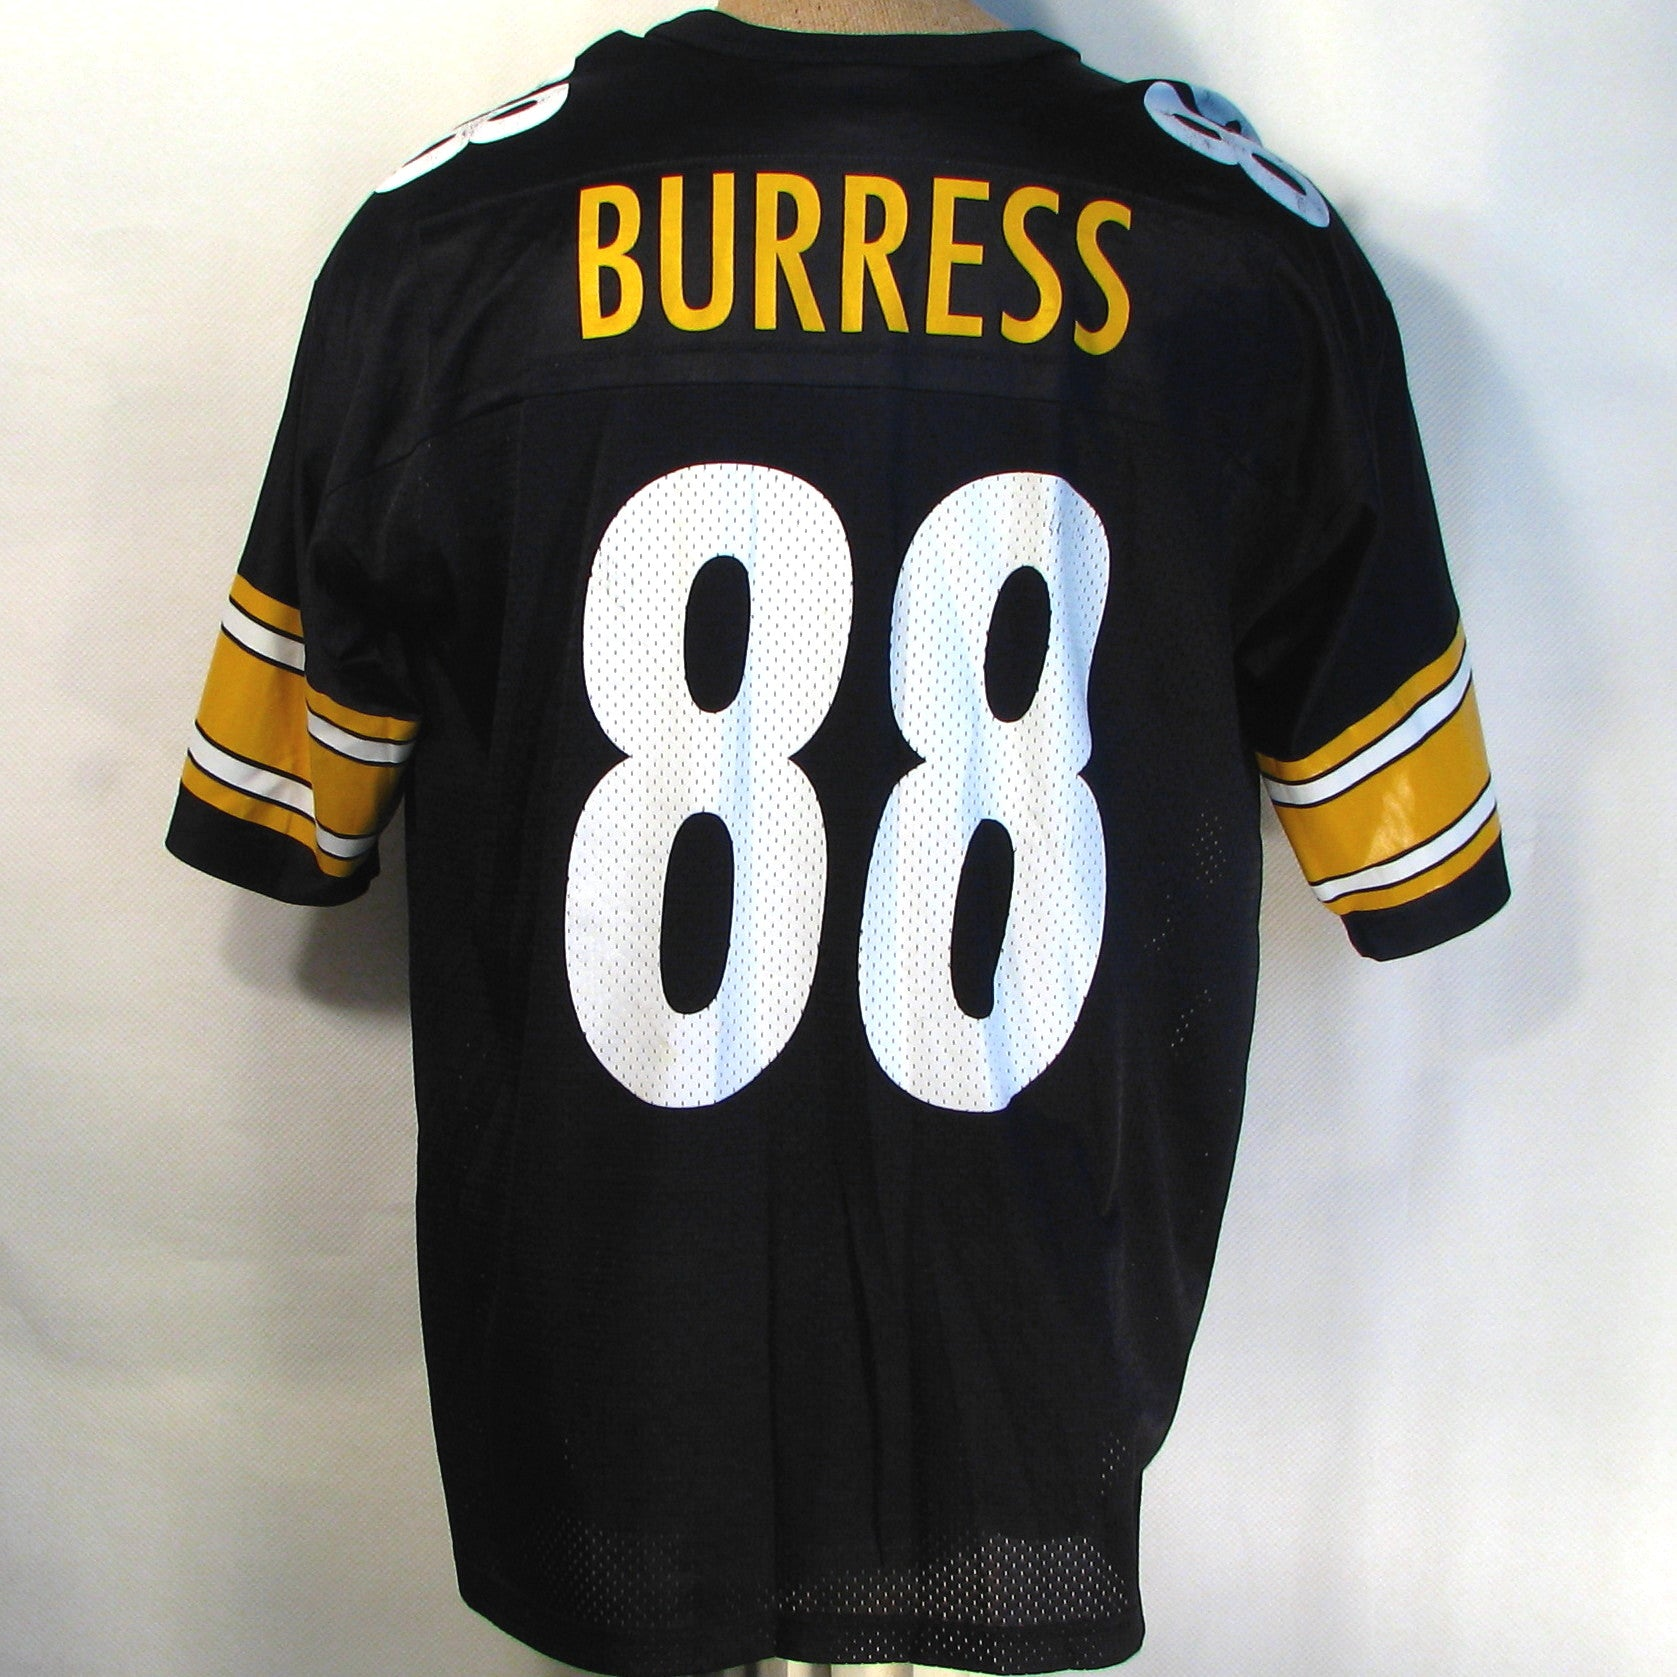 Pittsburgh Steelers Burress #88 Jersey